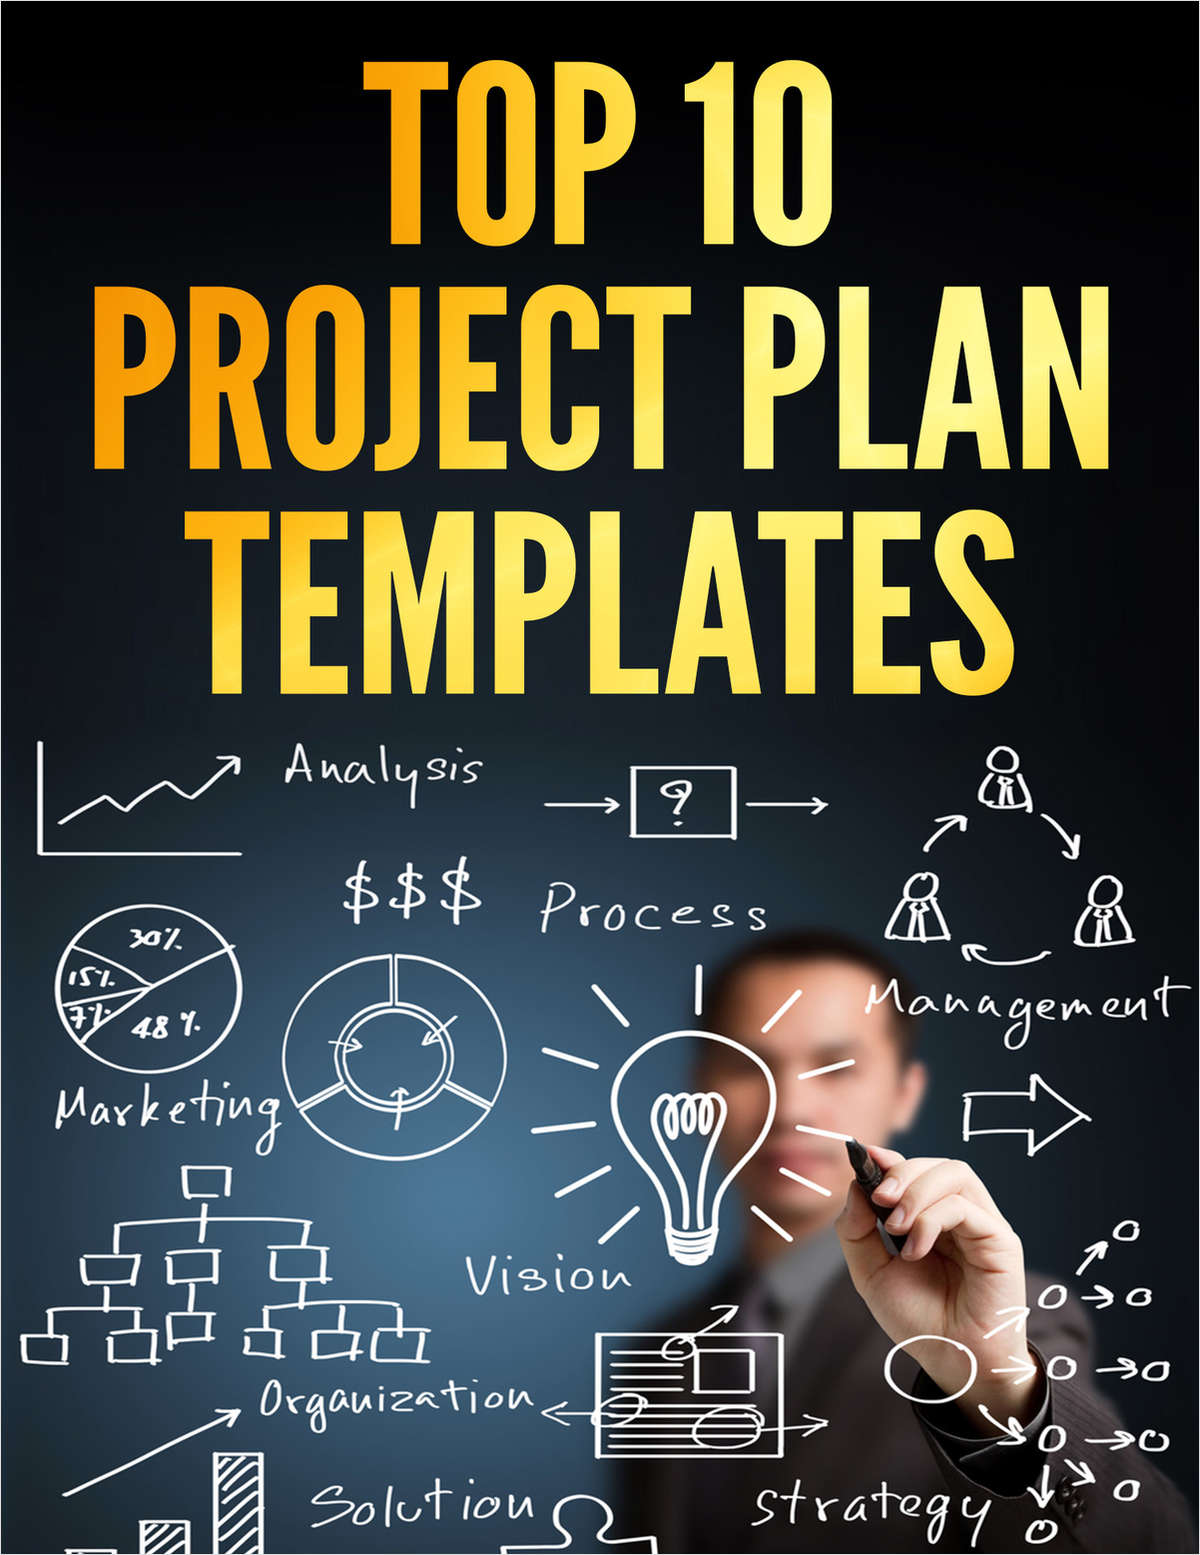 Top 10 Project Plan Templates and Checklists